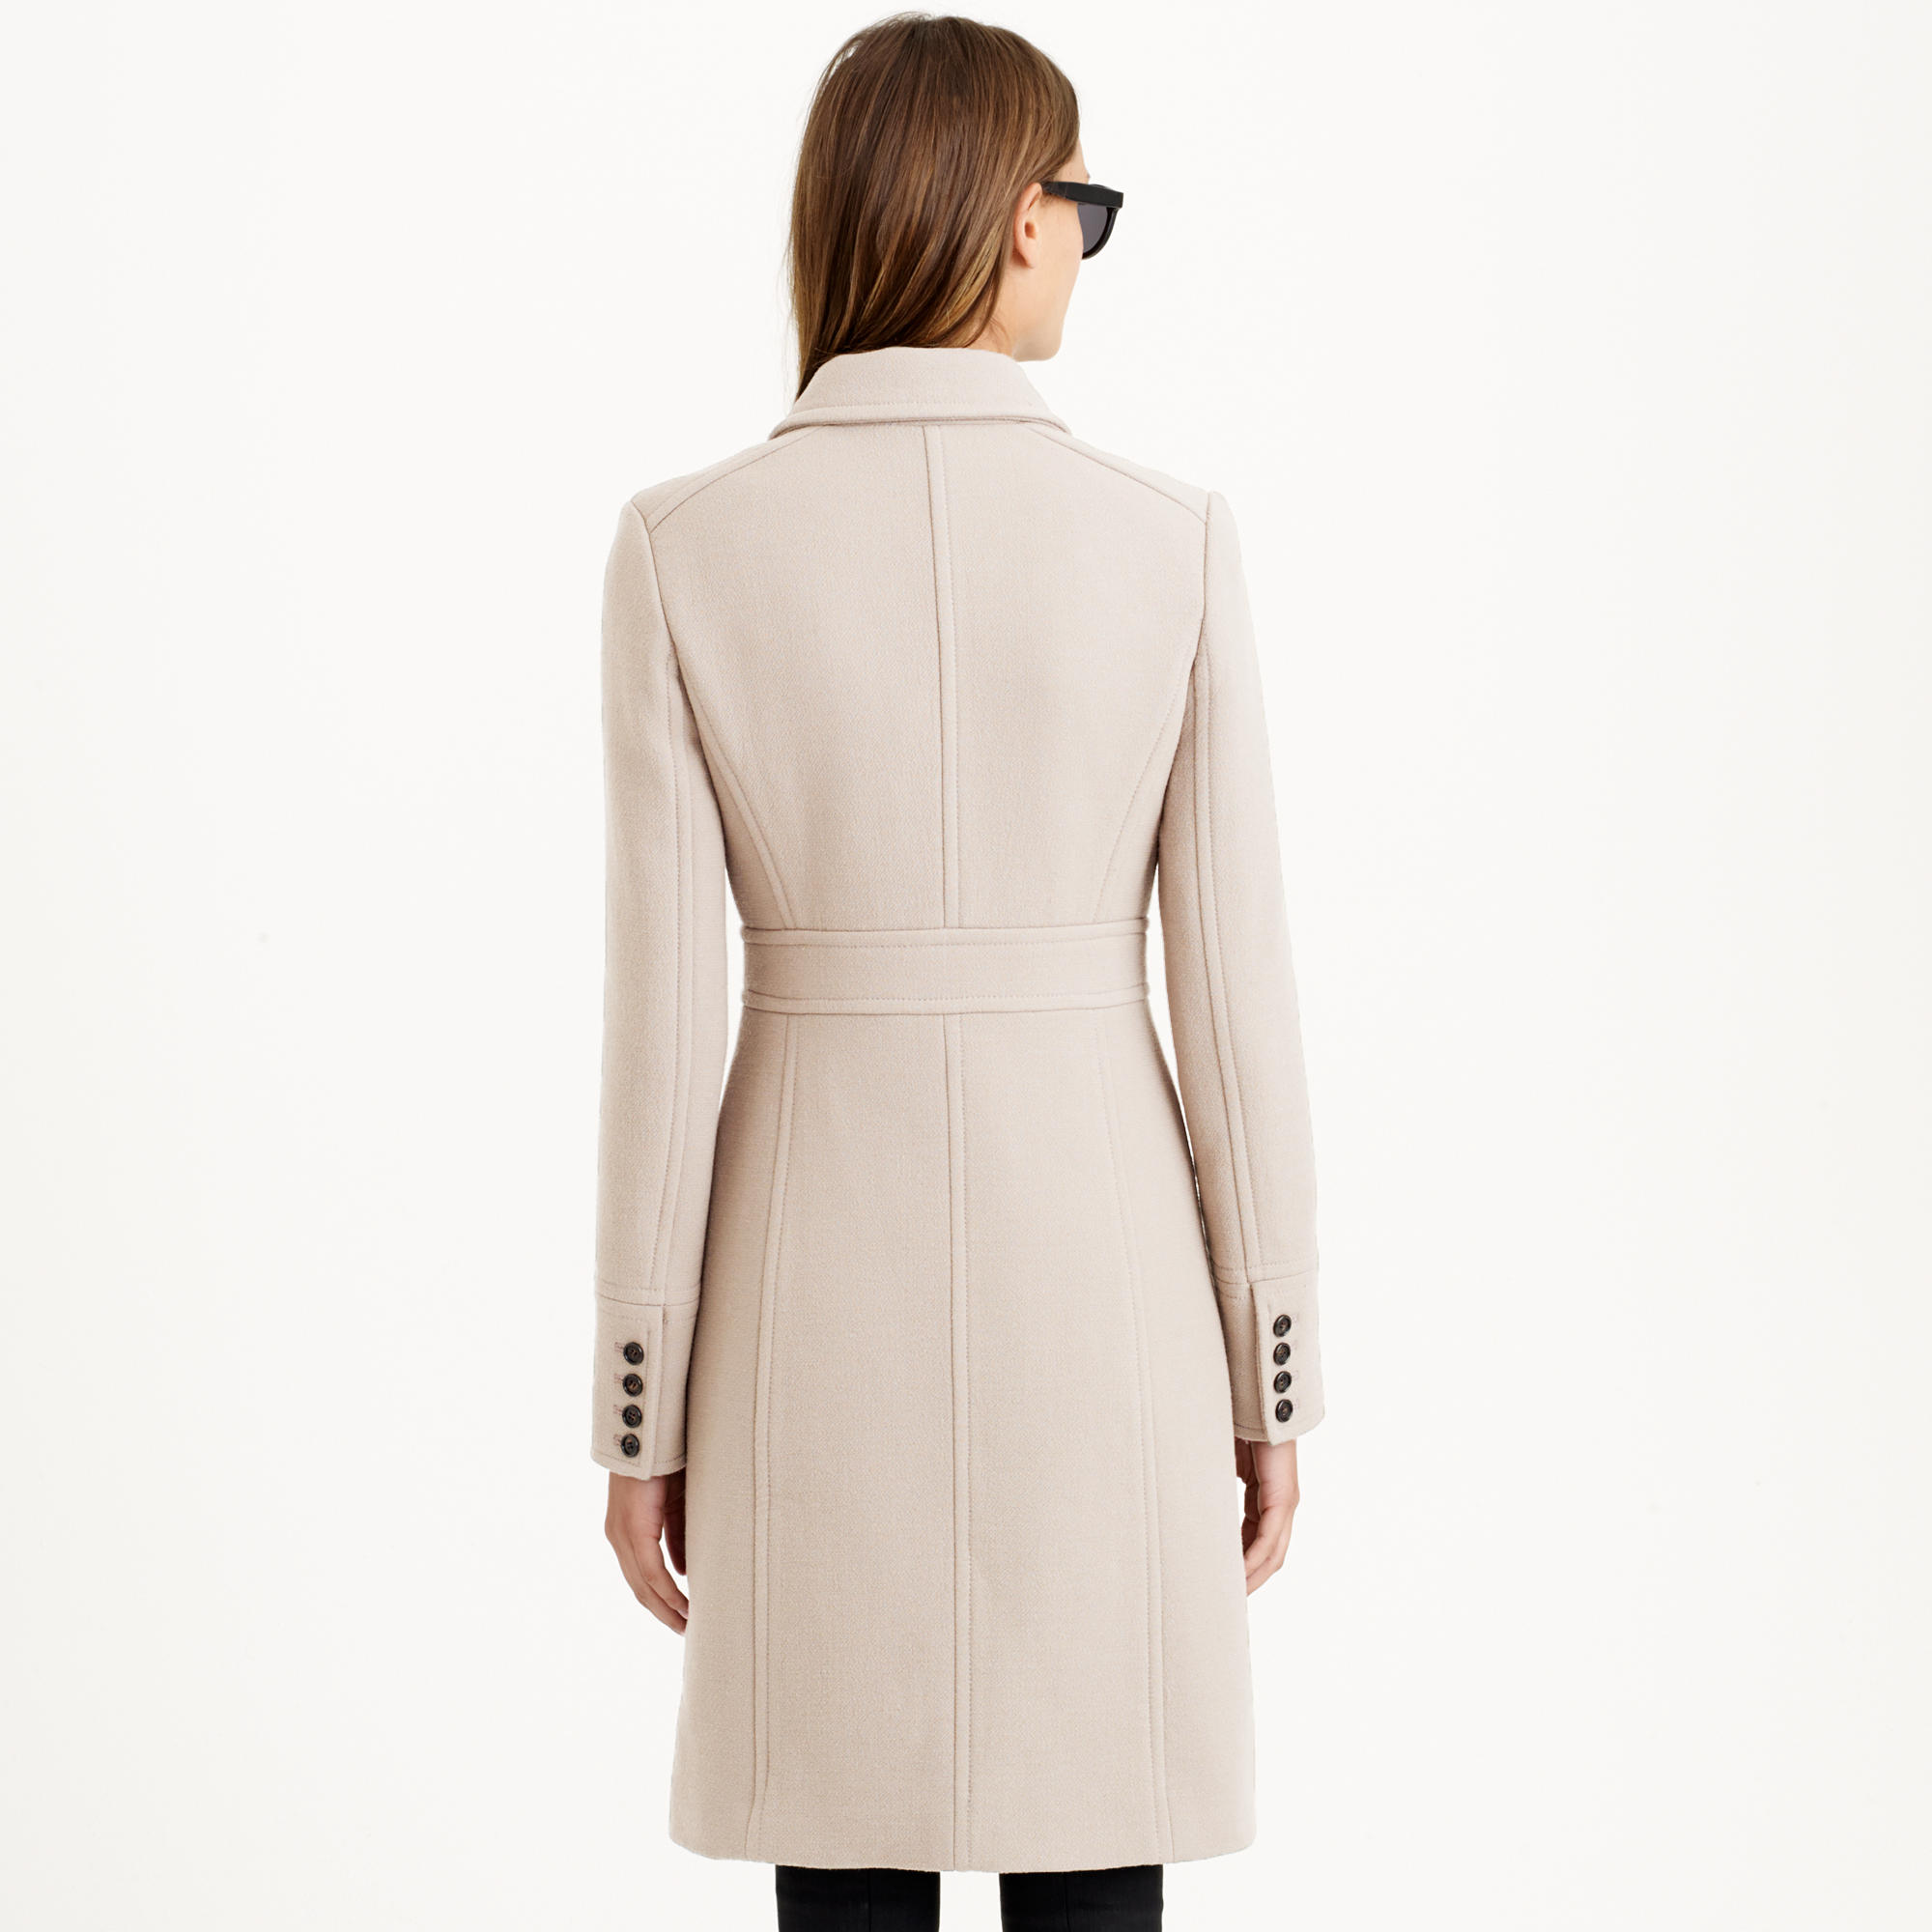 Cloth lady day coat with thinsulate®